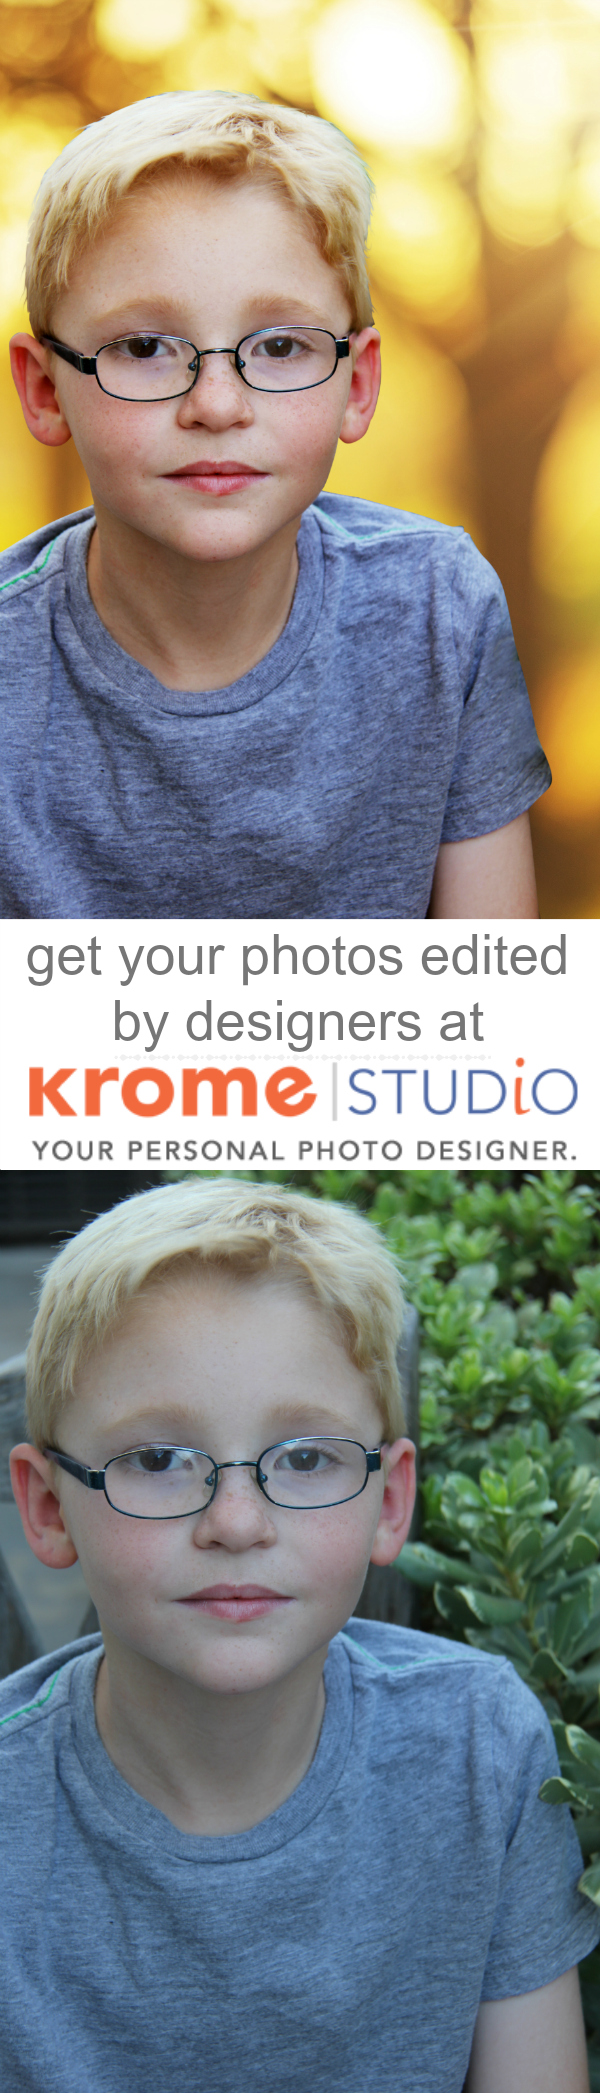 get-your-photos-edited-by-professional-designers-at-krome-studio